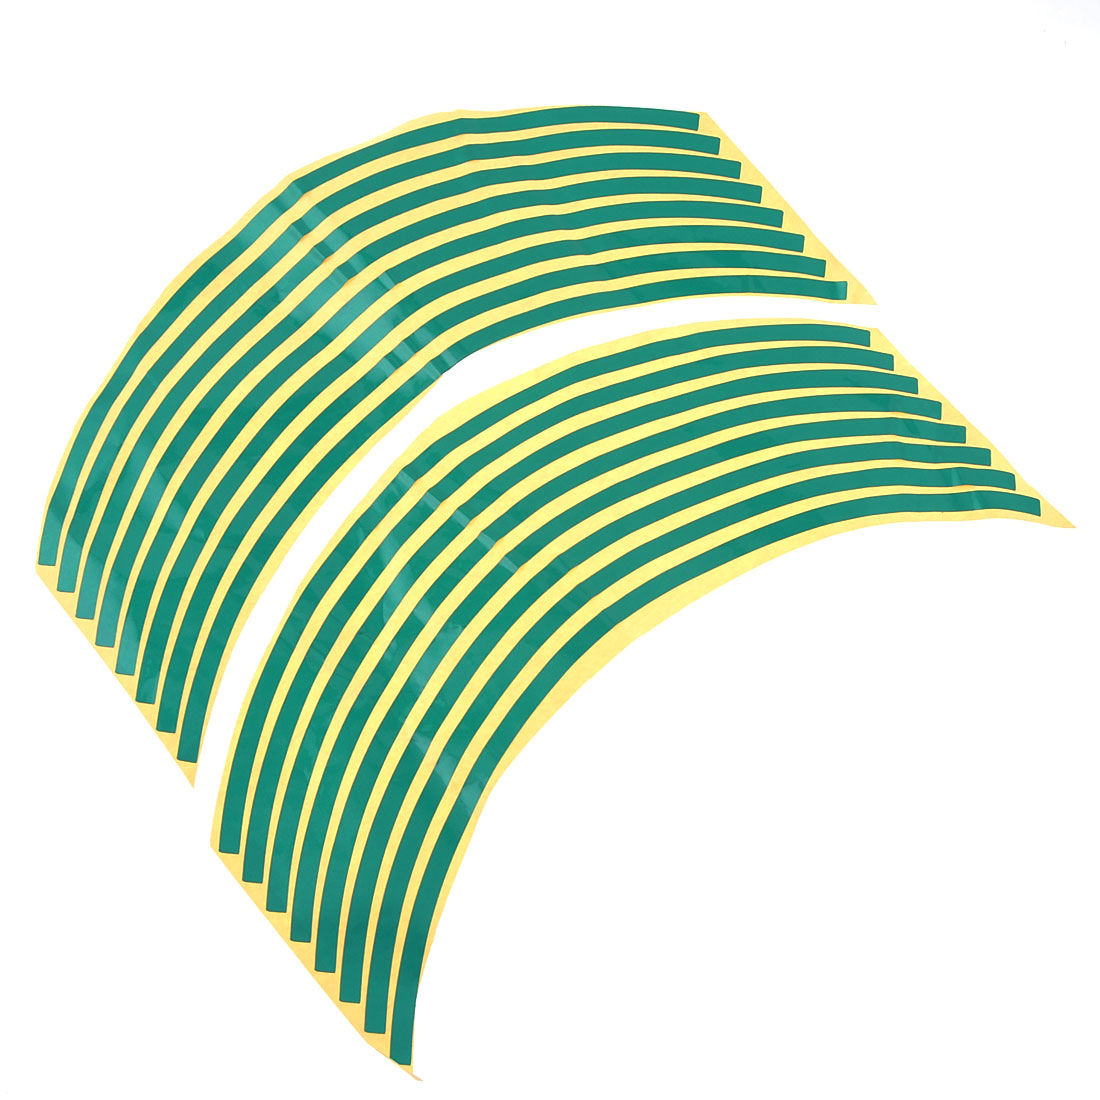 UXCELL 16 Pieces Adhesive Car Motorcycle Wheel Stickers Decals Ornament Green 13